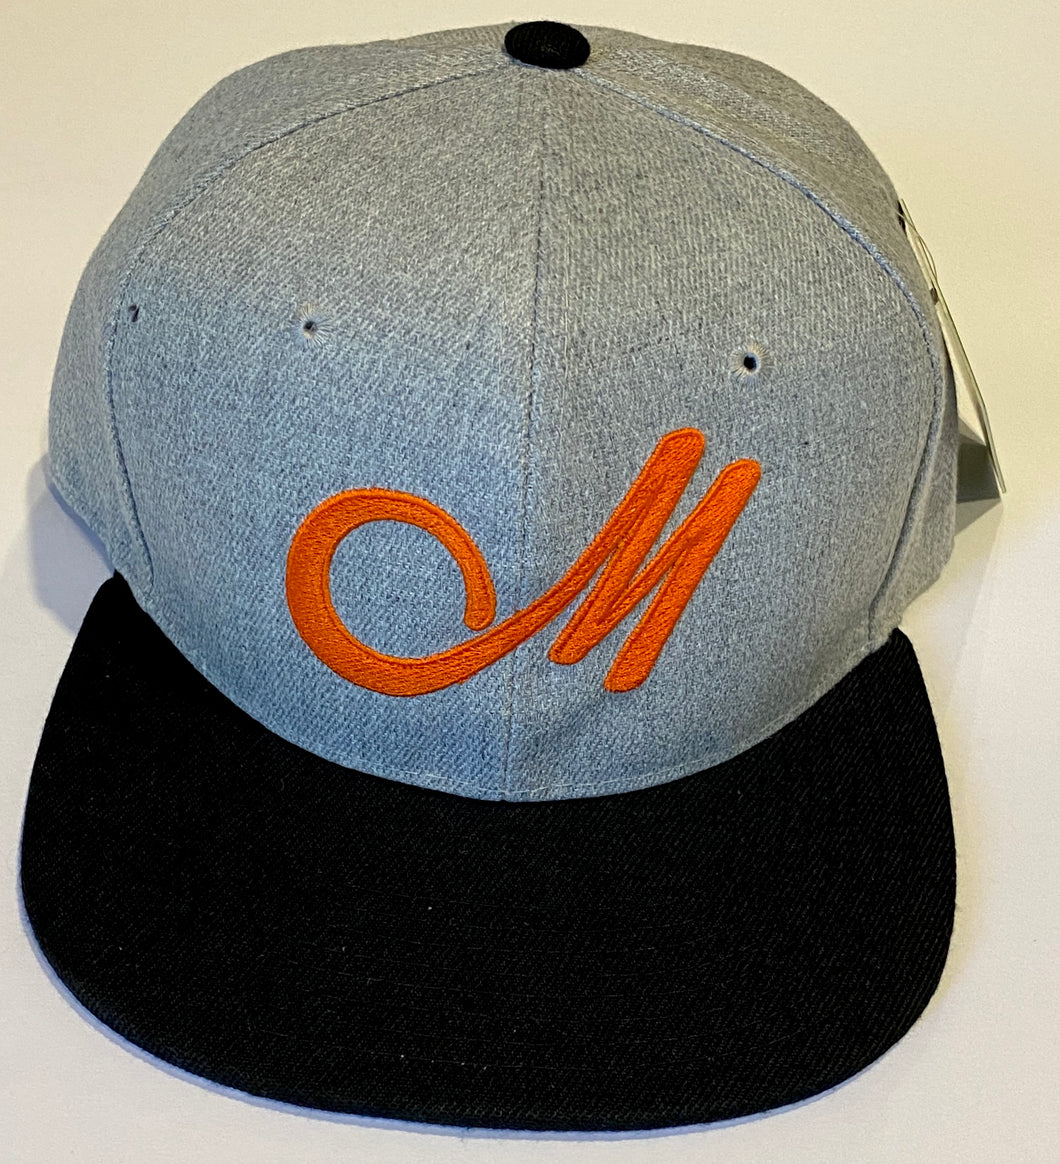 M LOGO SNAP BACK GREY & BLACK BASEBALL HAT